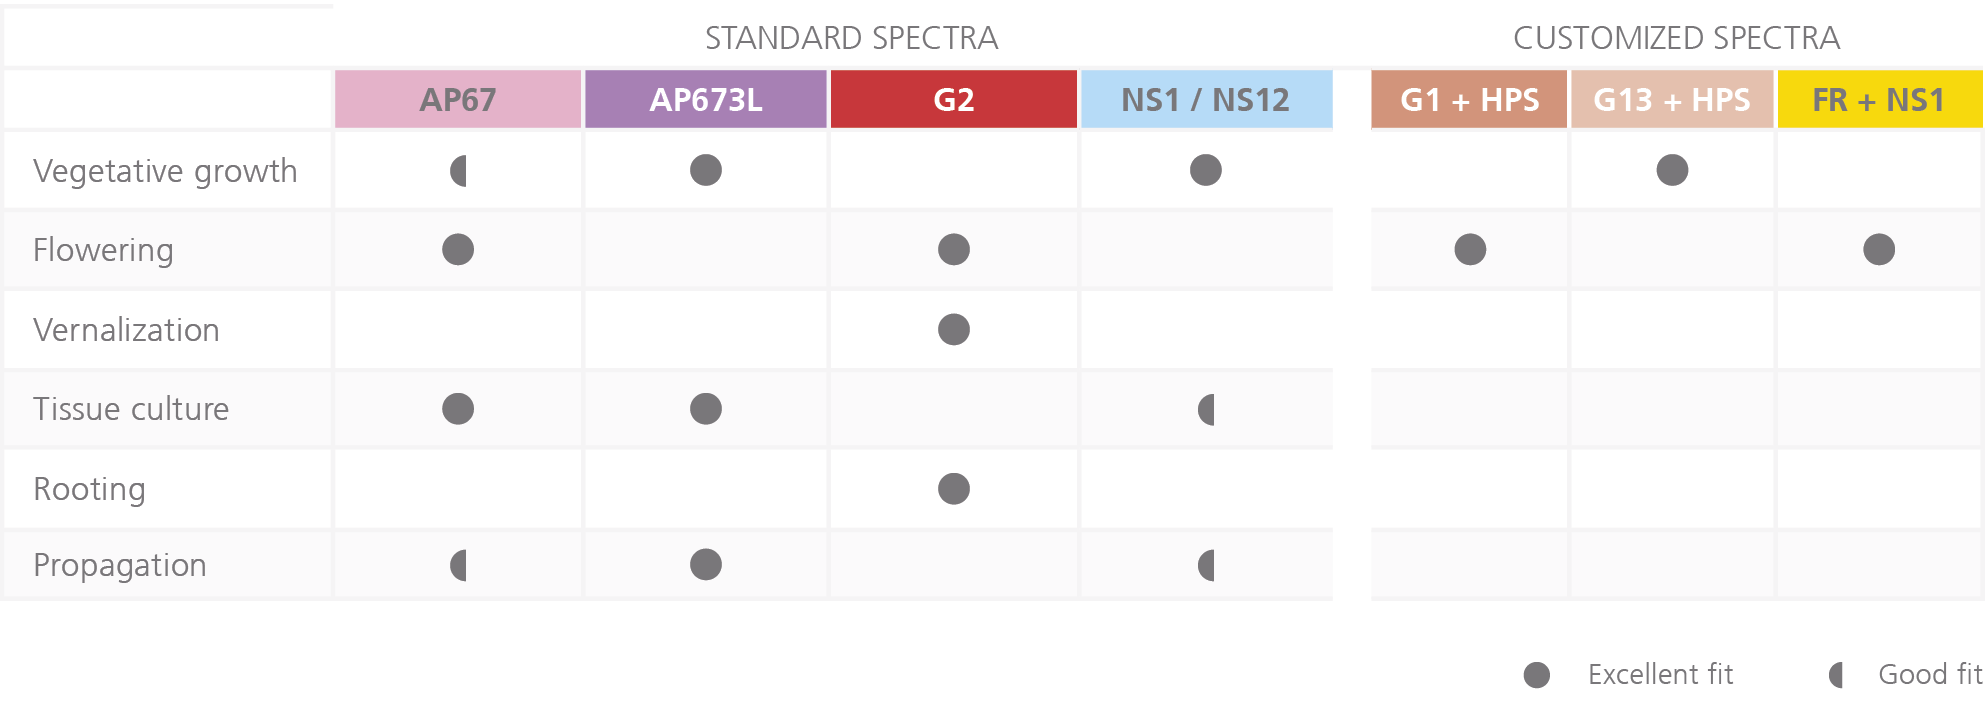 Spectra for LED Grow Lights